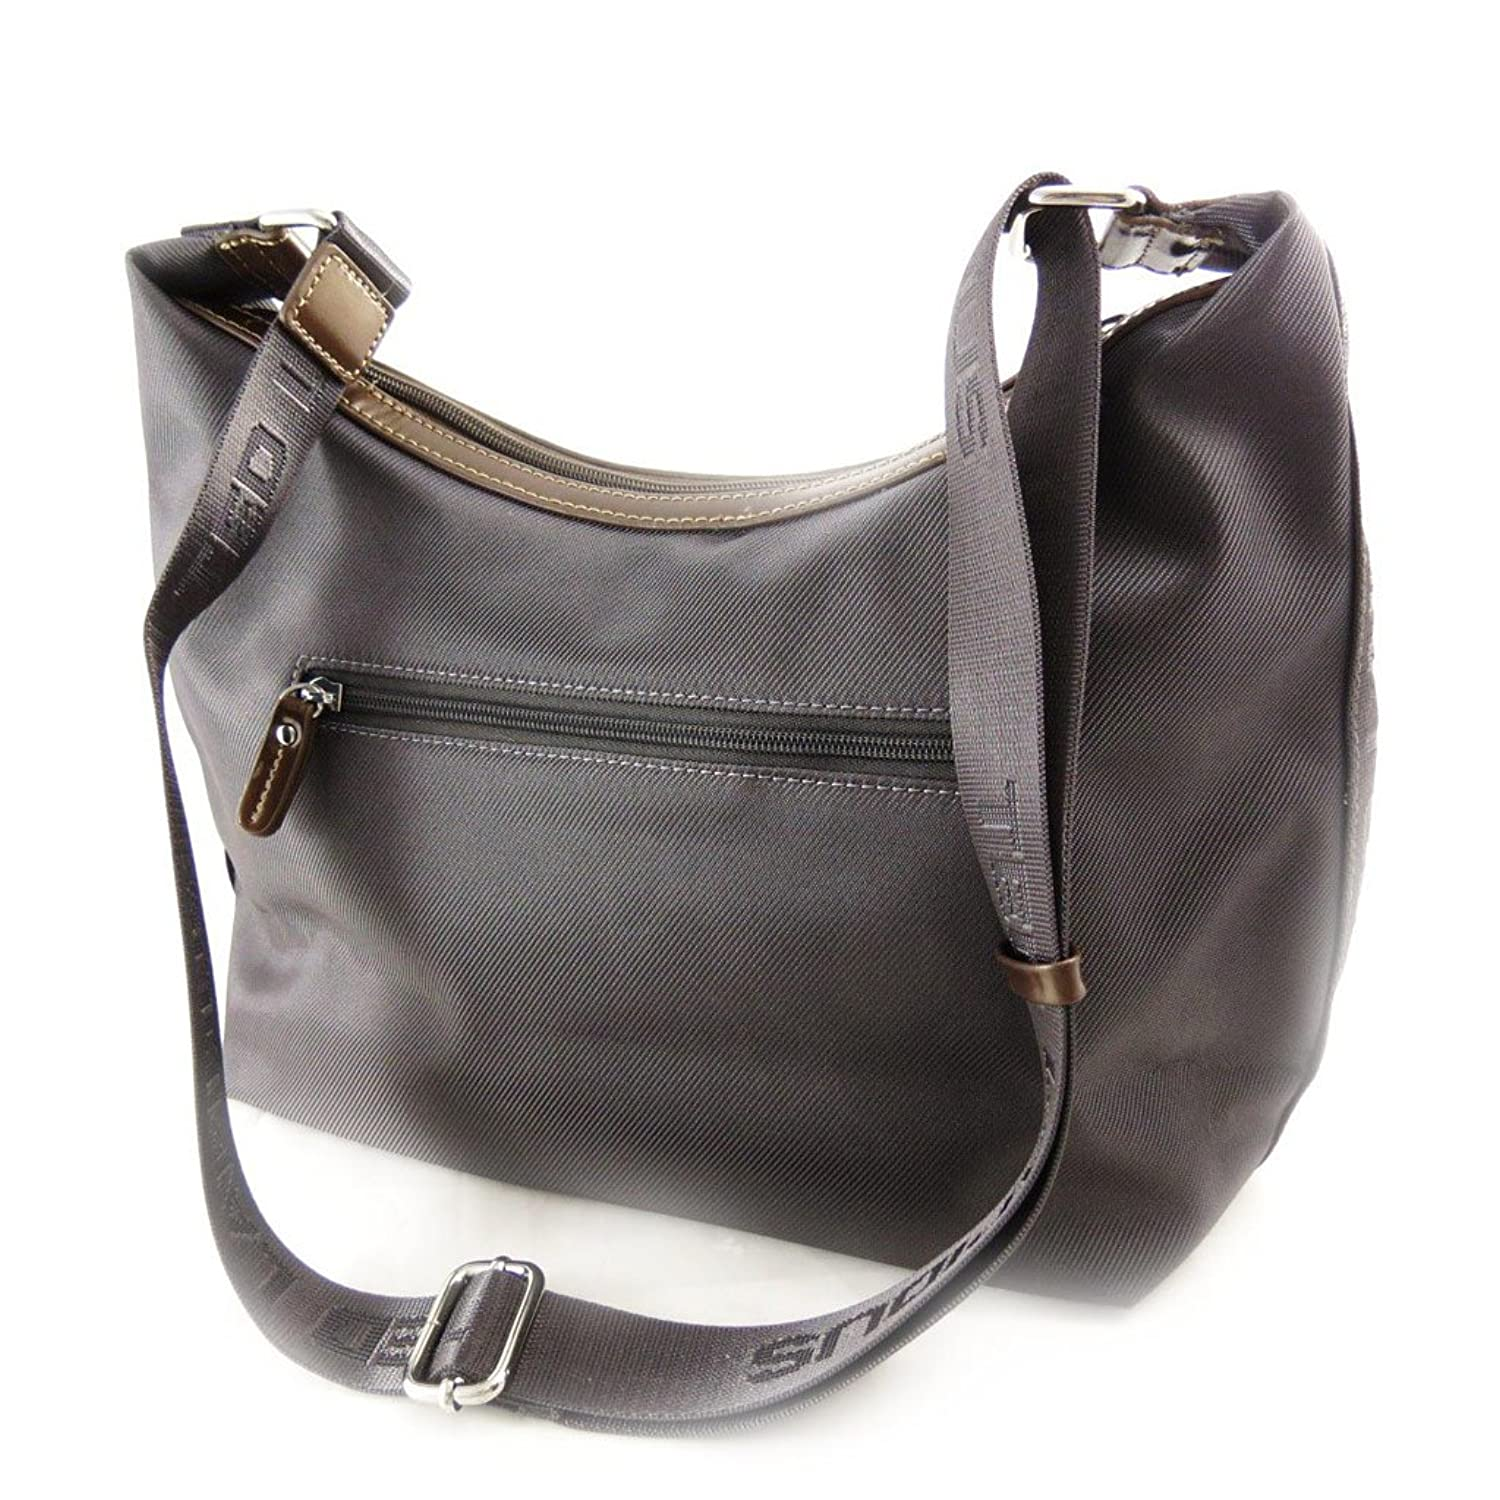 Ted Lapidus [J5071] - Sac besace 'Ted lapidus' gris taupe